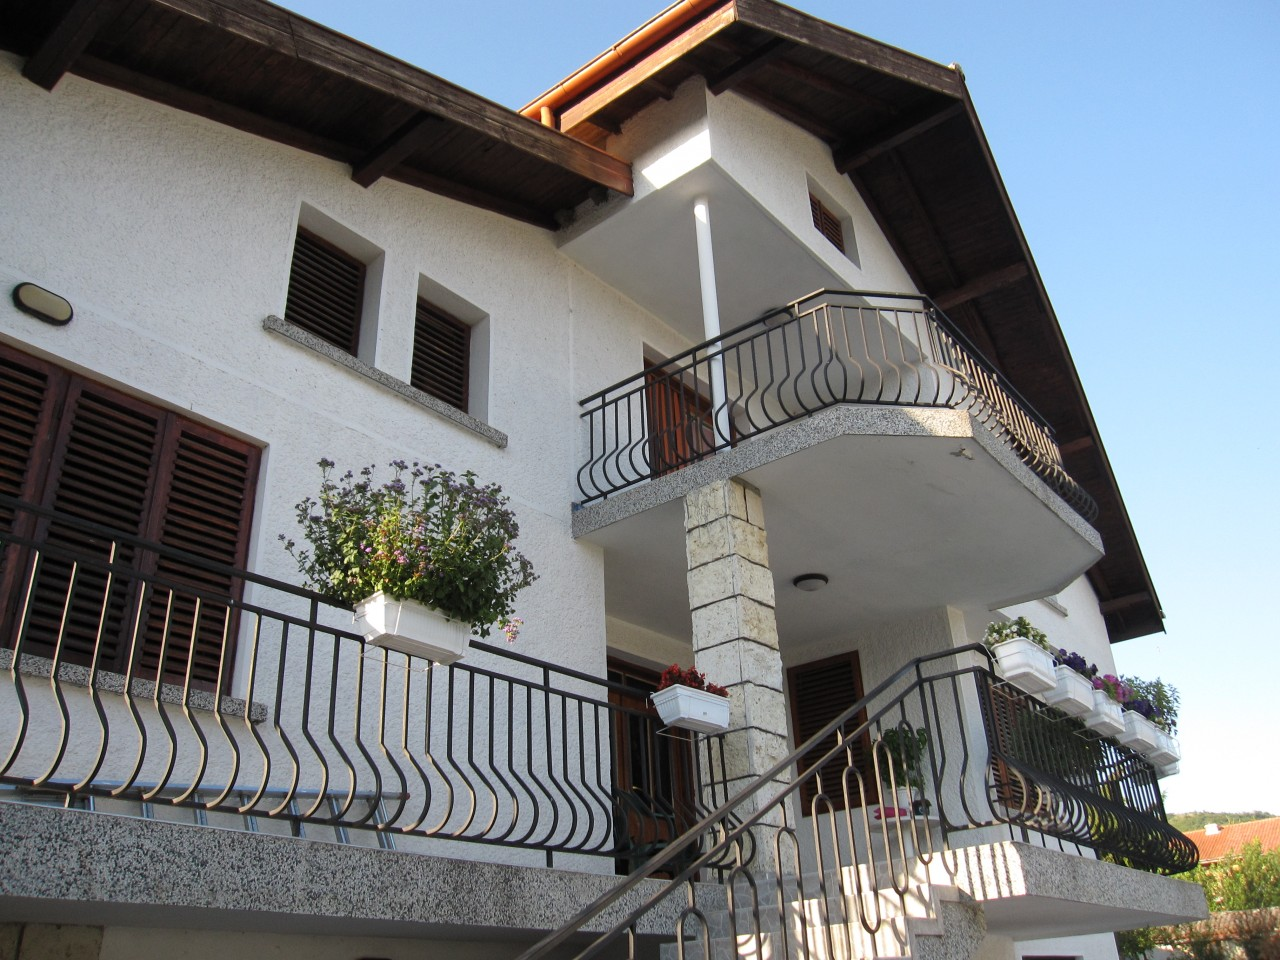 3-storey house with swimming pool 3 km from the resort k